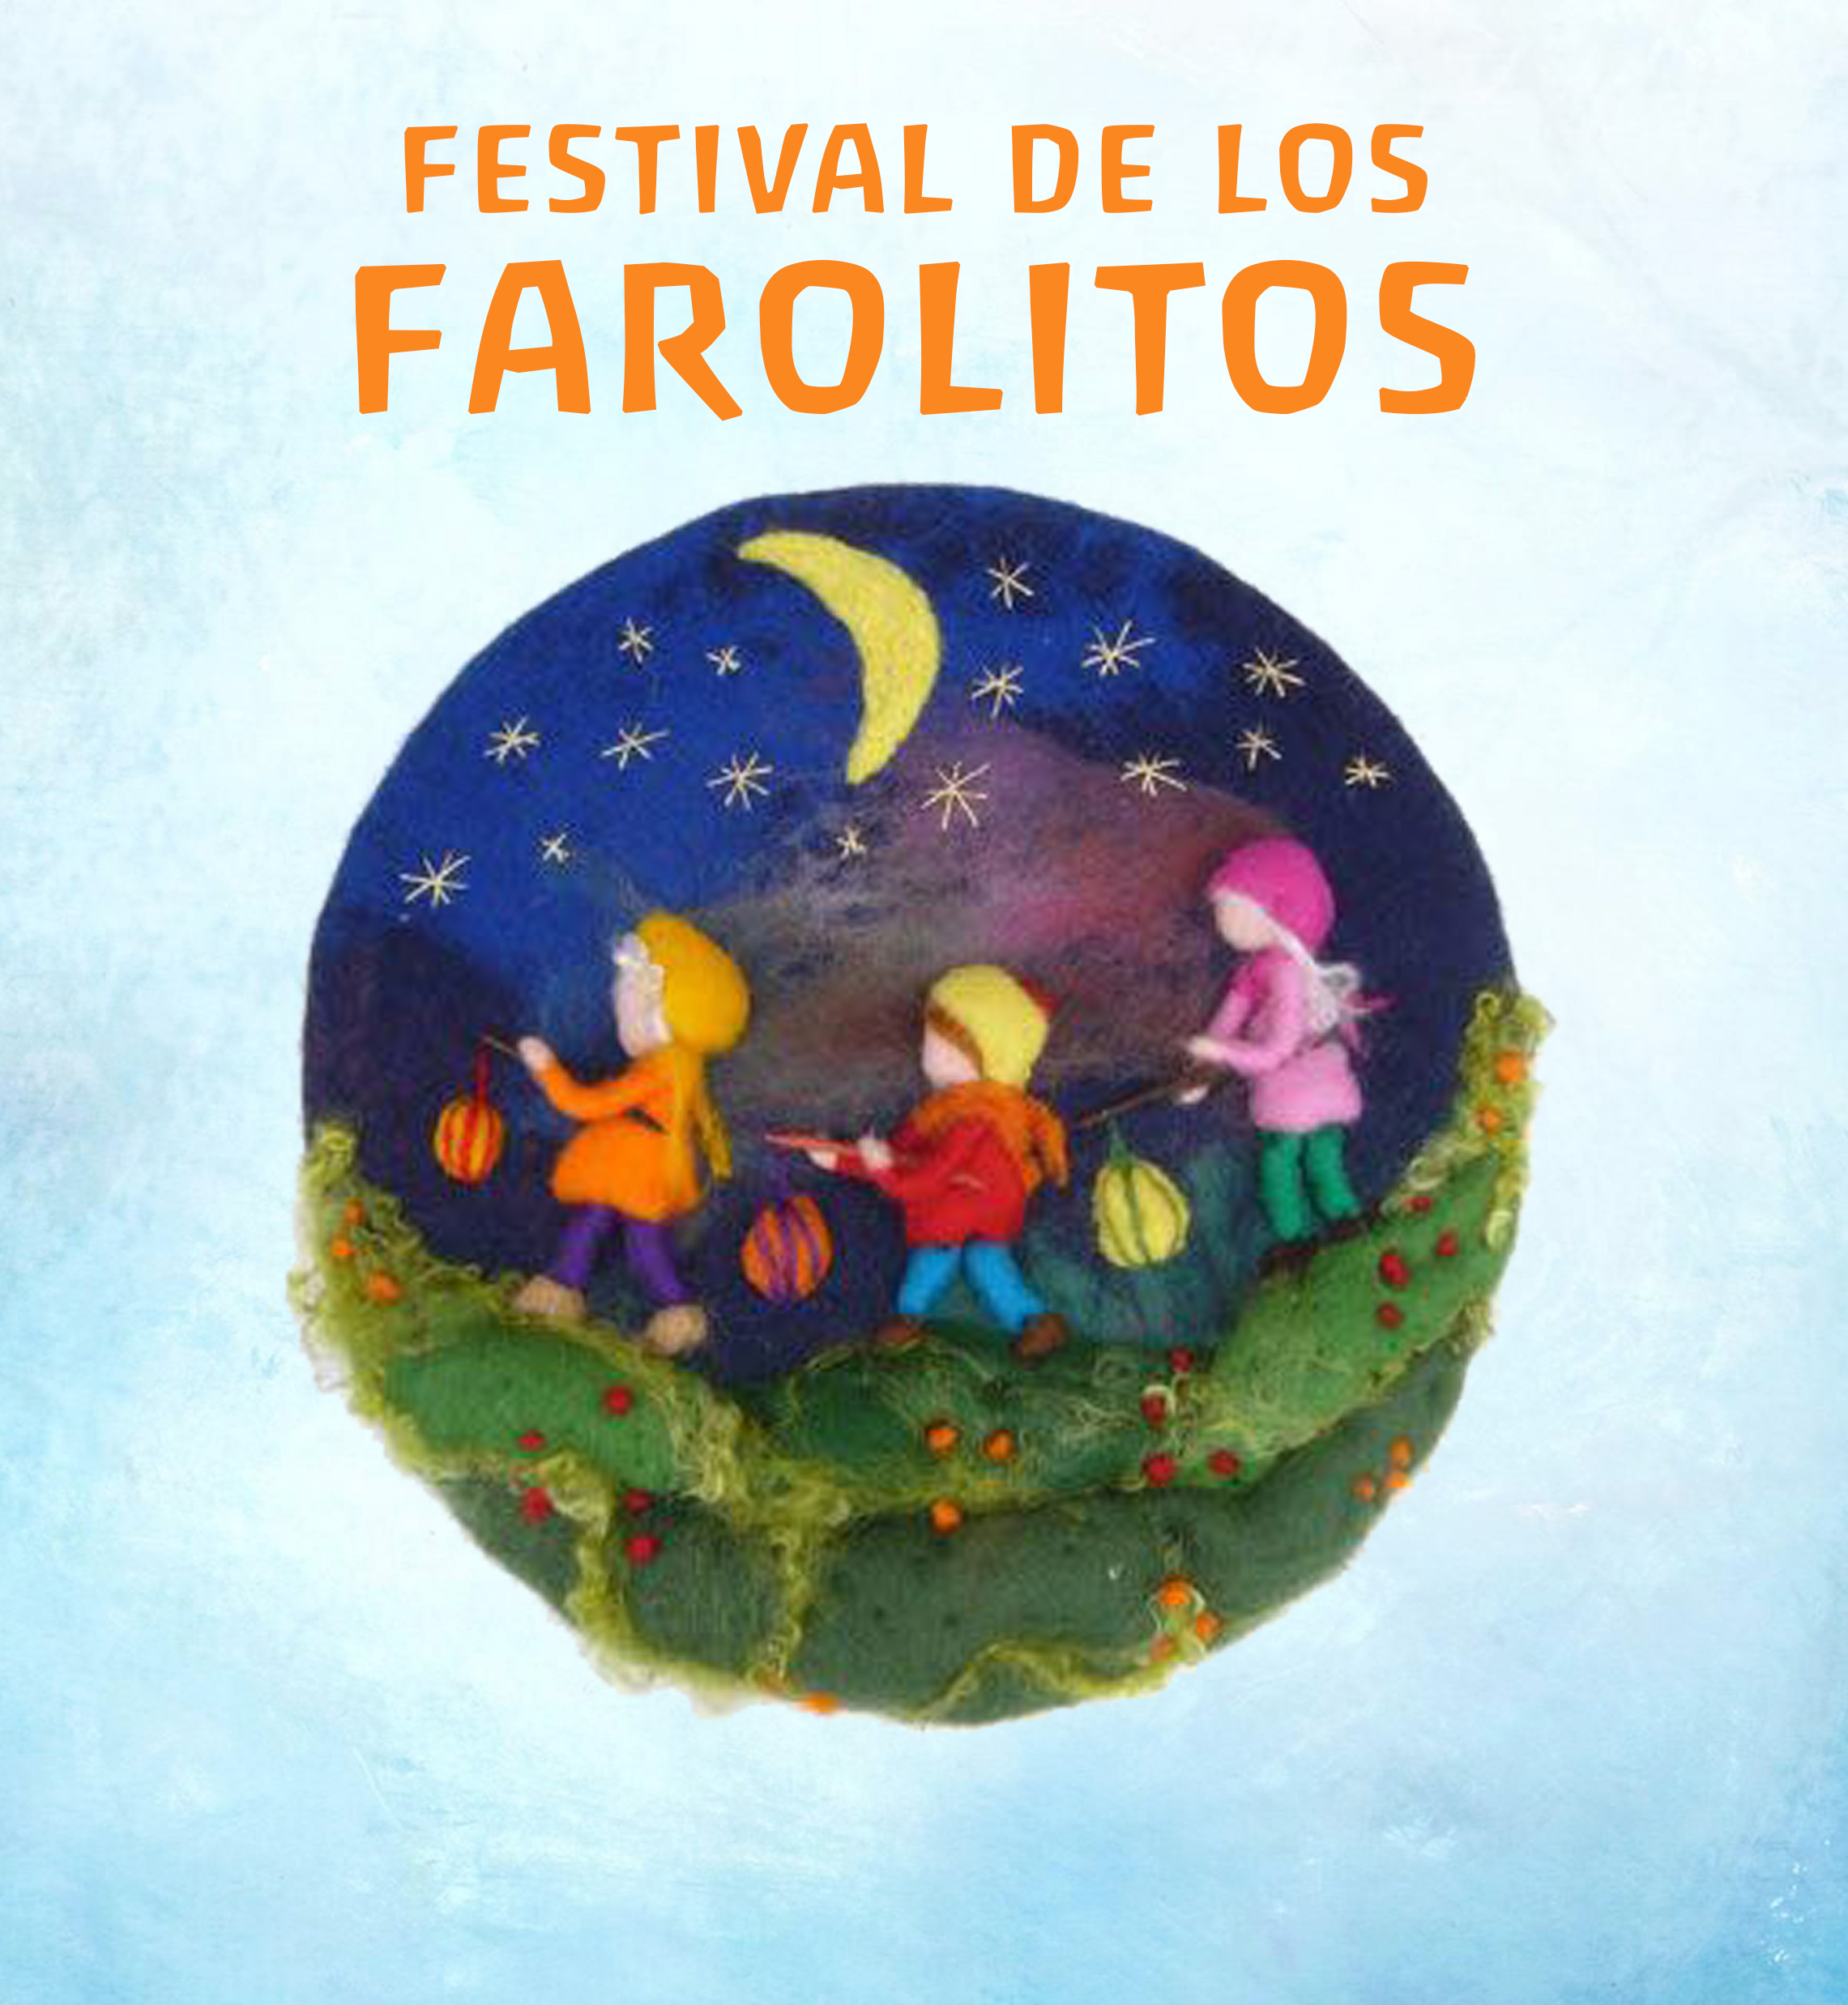 Festival-Farolitos-2018-for-event.jpg